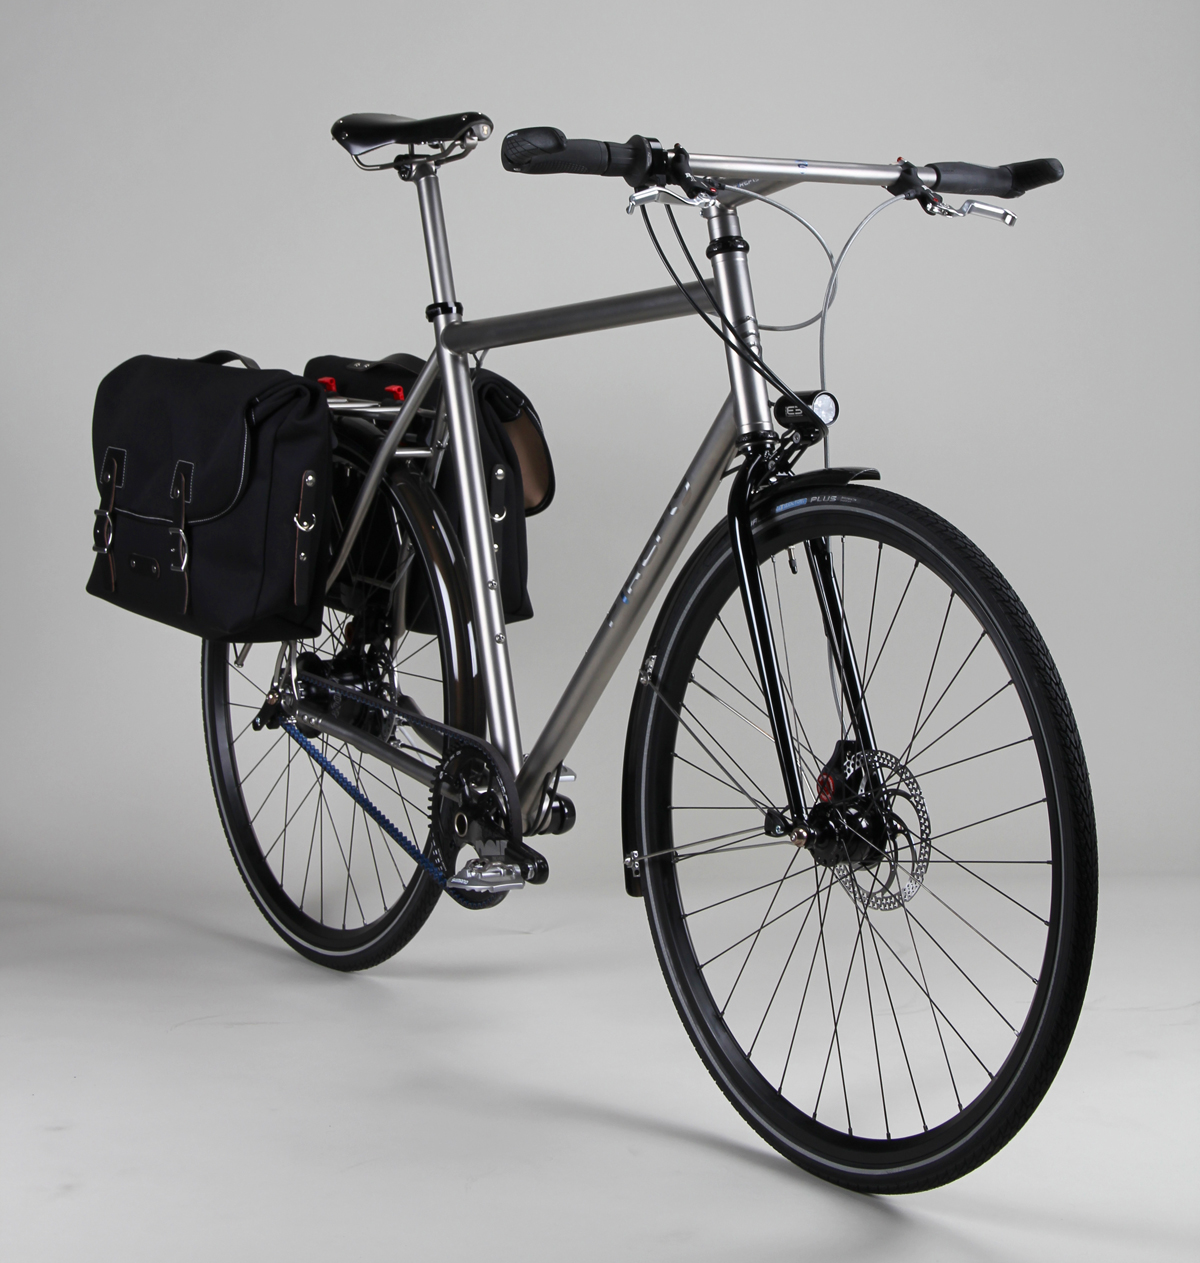 The Monkey Lab Rohloff Equipped Belt Driven Firefly